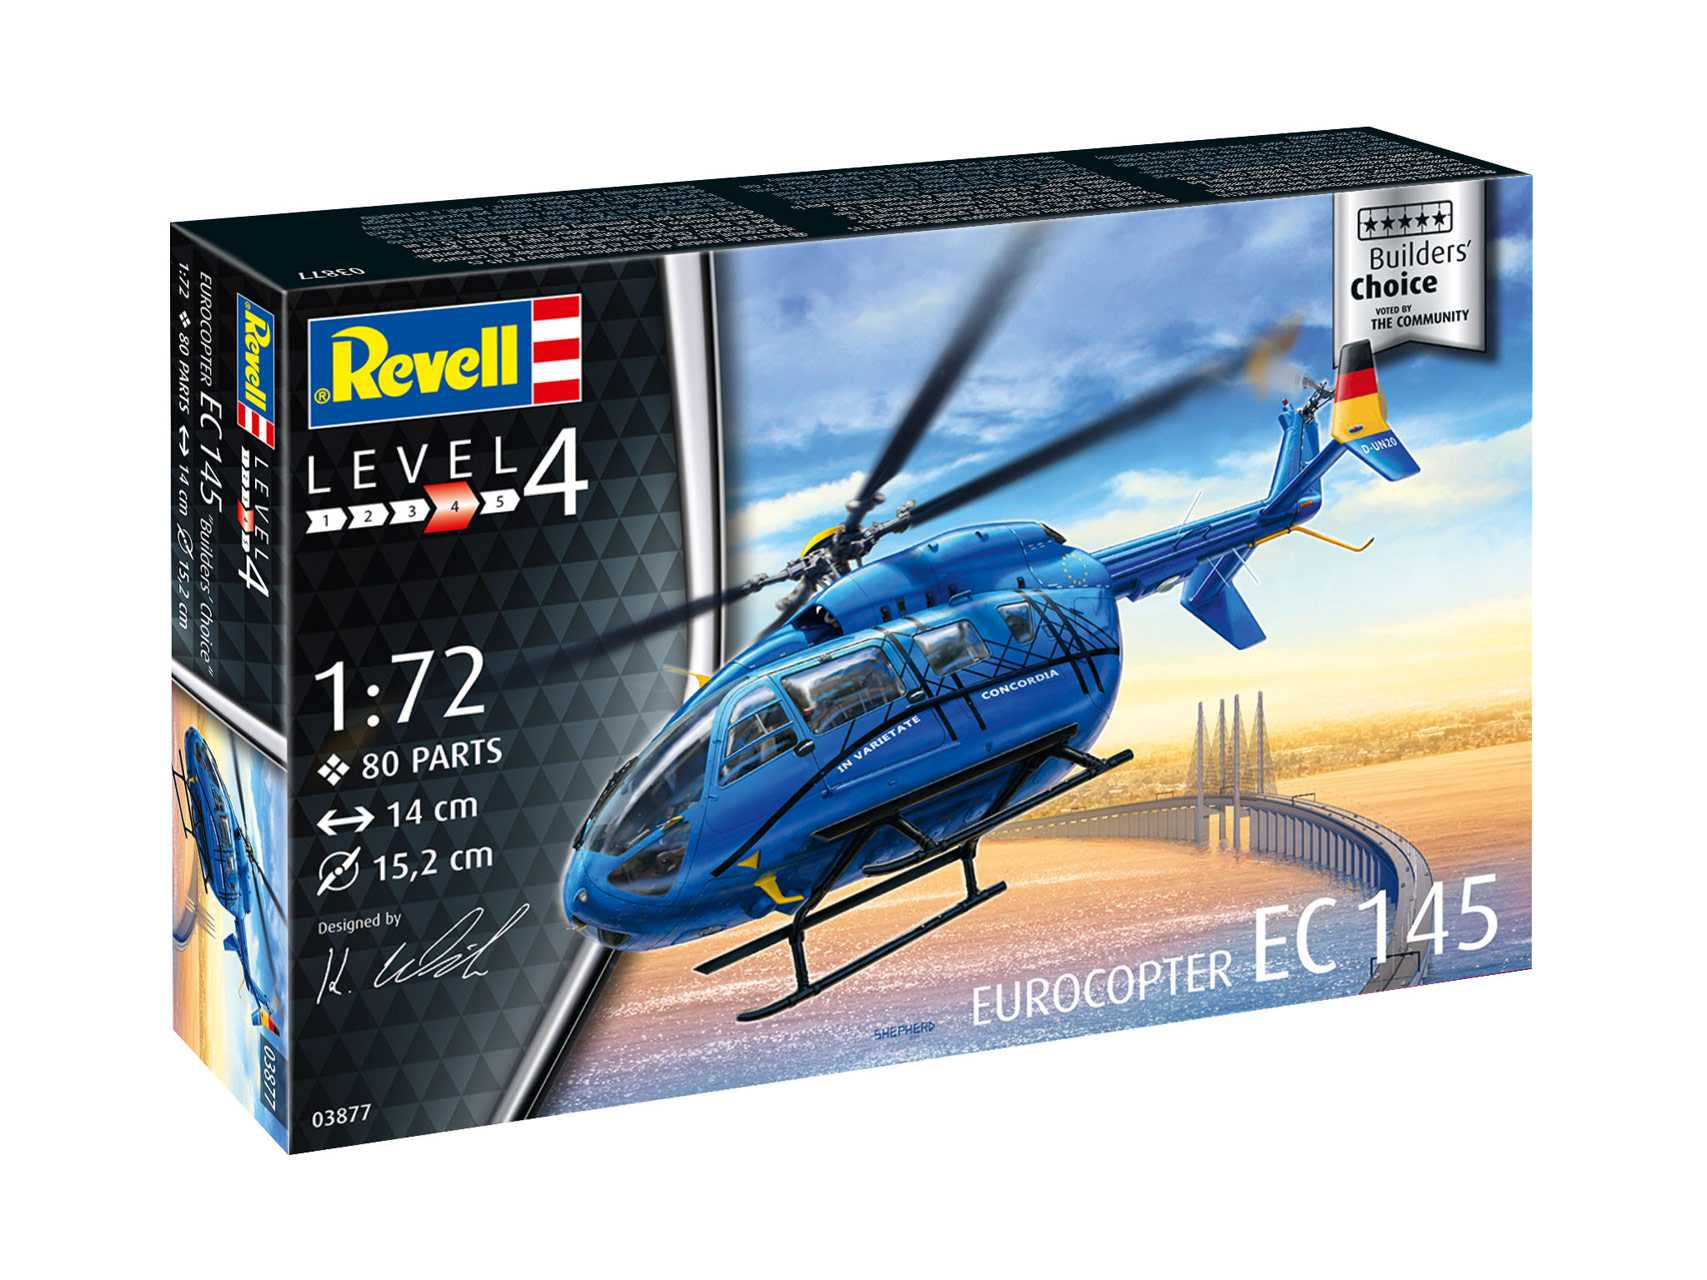 1:72 Eurocopter EC 145 ″Builder's Choice″